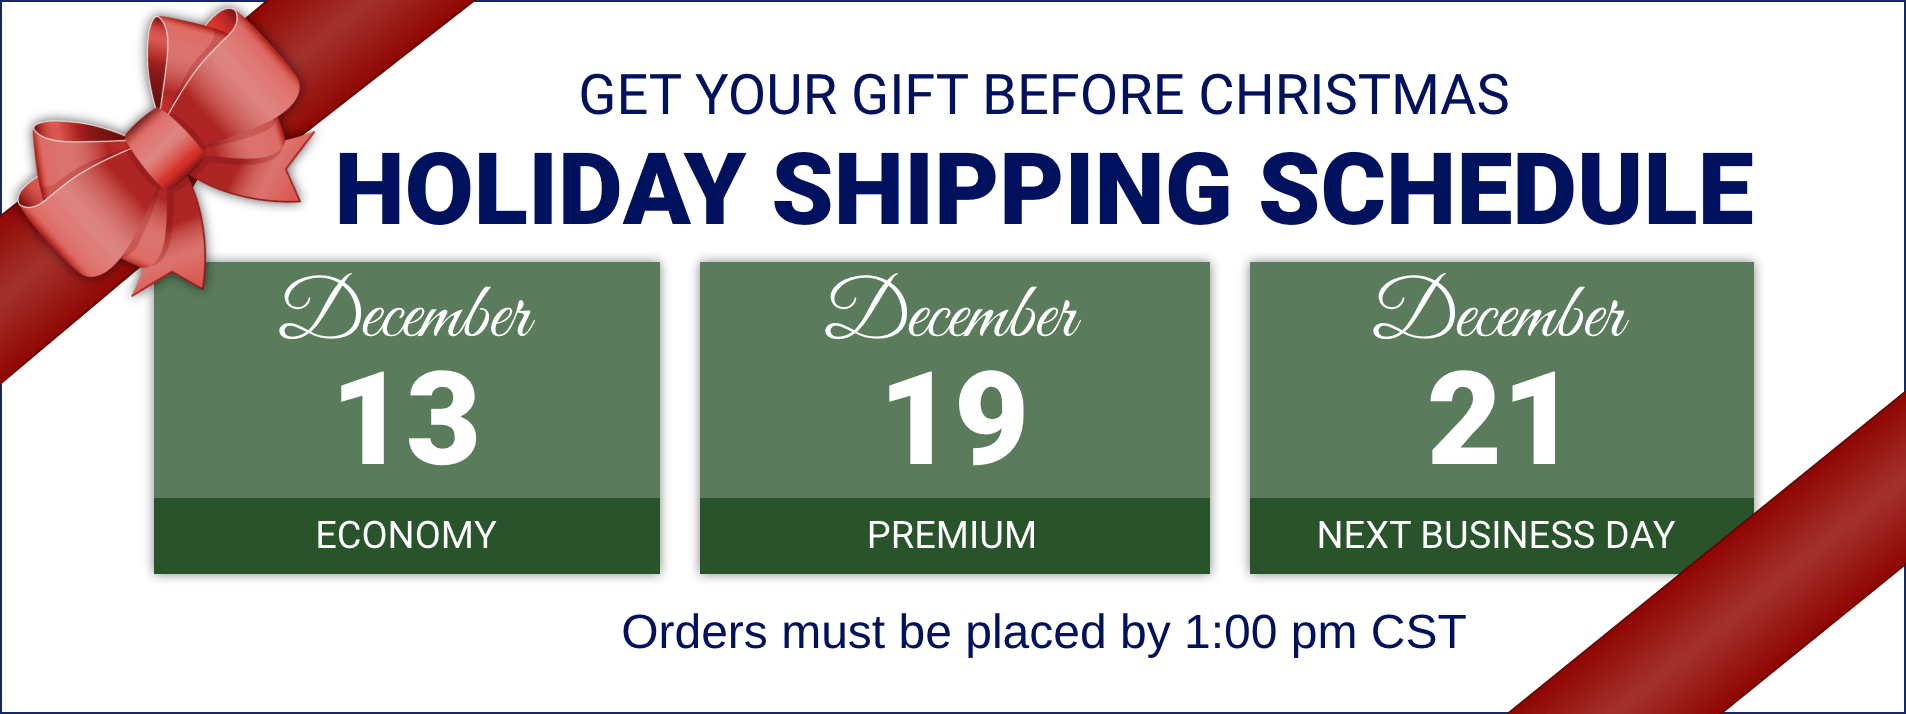 Holiday Shipping Schedule - Get your gifts before Christmas